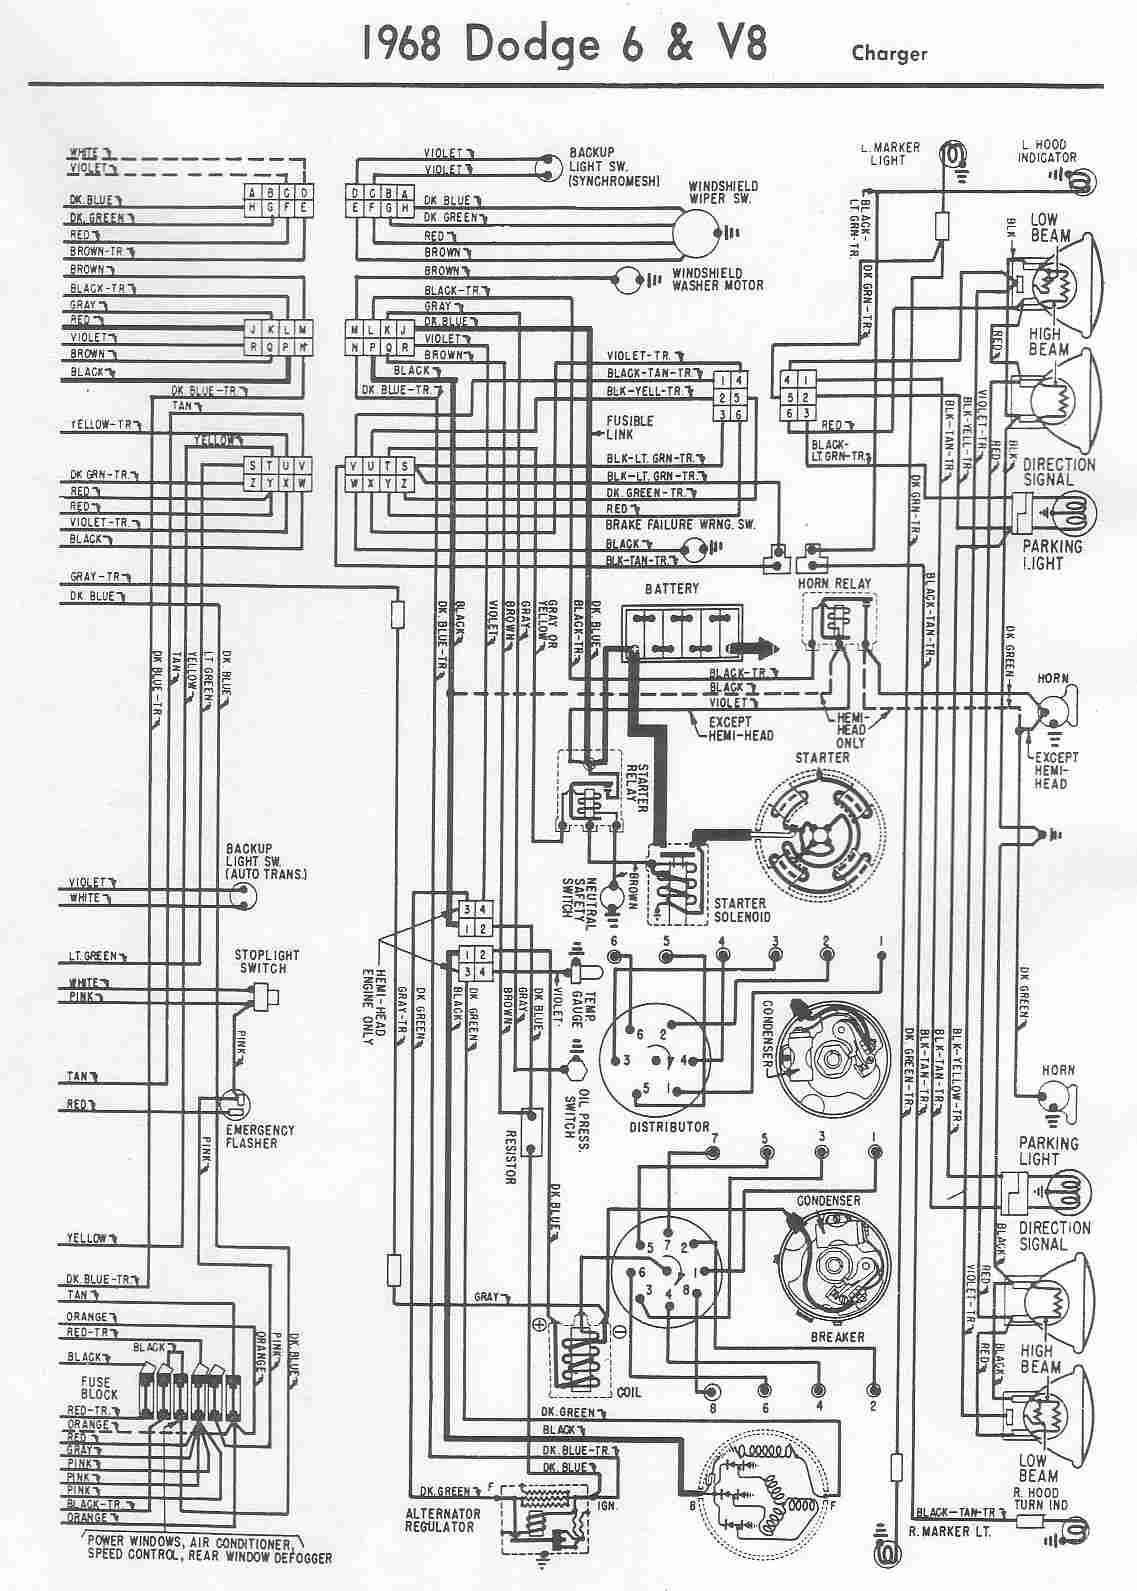 charger electrical wiring diagram of 1968 dodge 6 and v8?t=1508404771 dodge car manuals, wiring diagrams pdf & fault codes wiring diagram for 1972 dodge charger at eliteediting.co